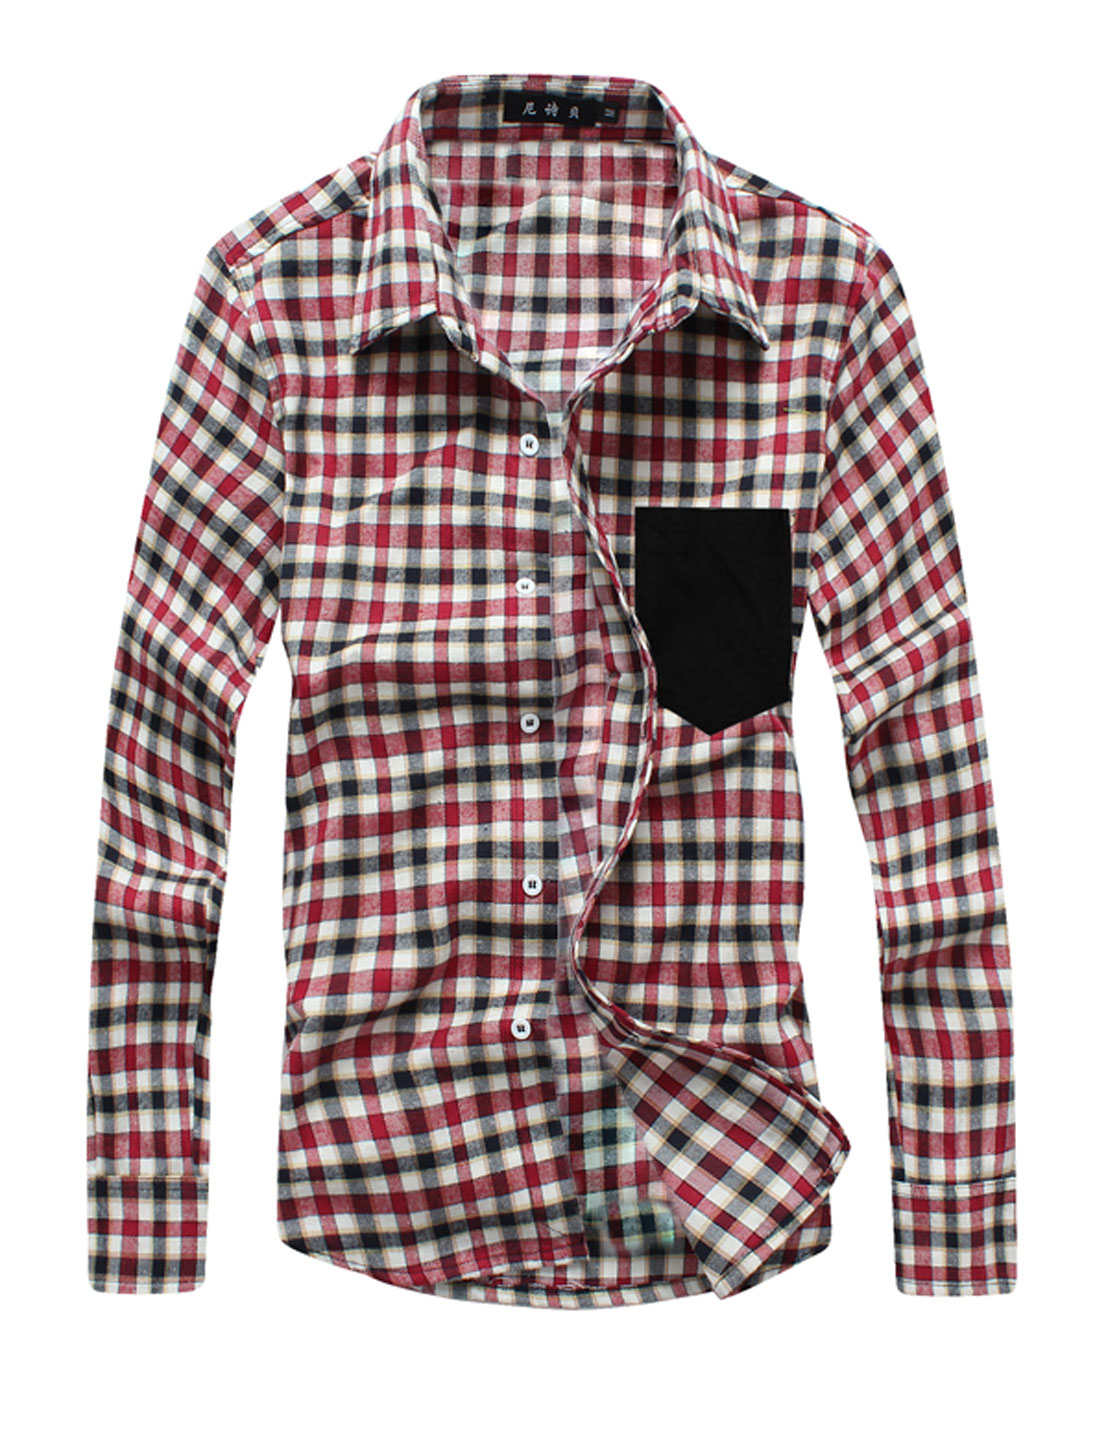 Man Plaids Pattern Button Up Point Collar Casual Shirts Burgundy Beige M